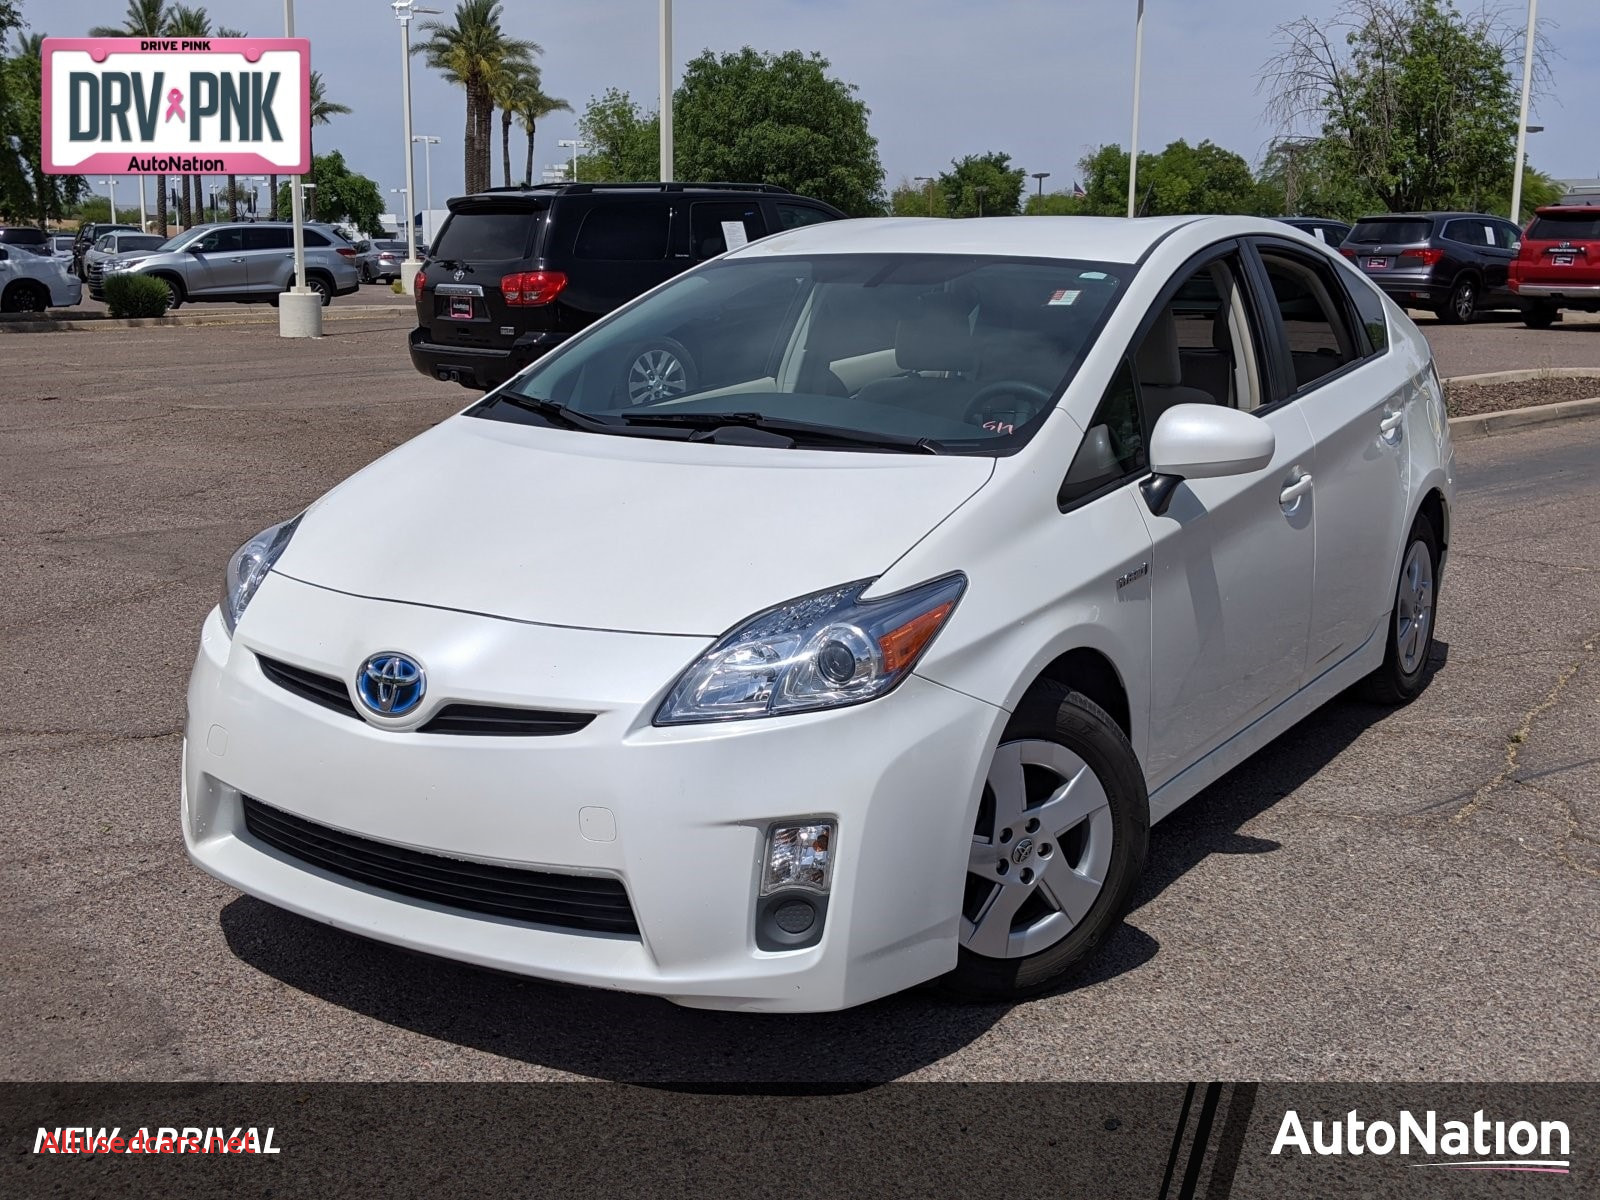 Cars for Sale Under 10000 In Phoenix Az Awesome Used Cars for Sale Near Me Tempe Az